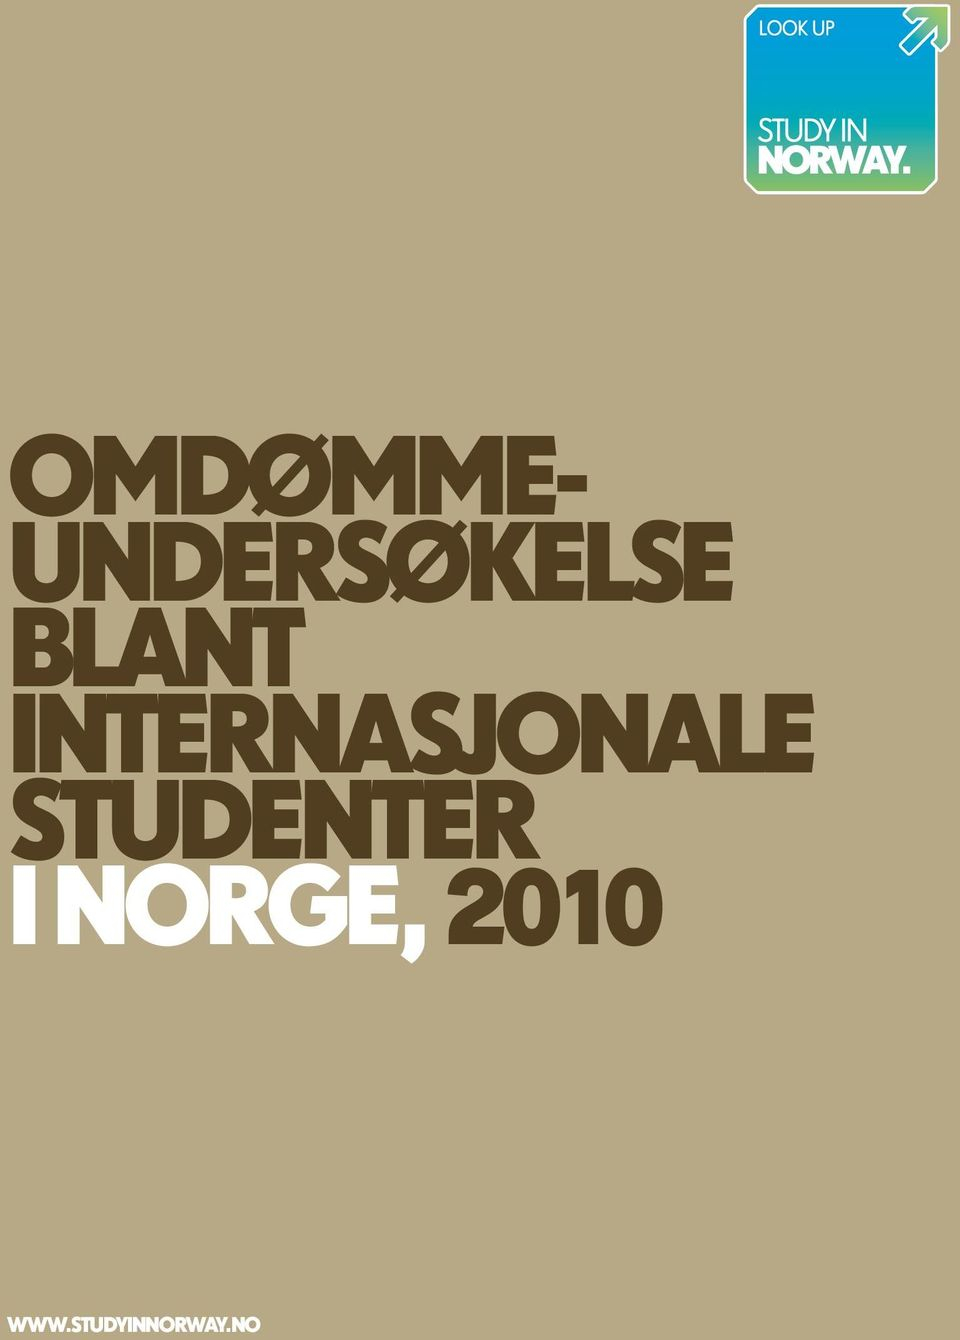 studenter i norge,